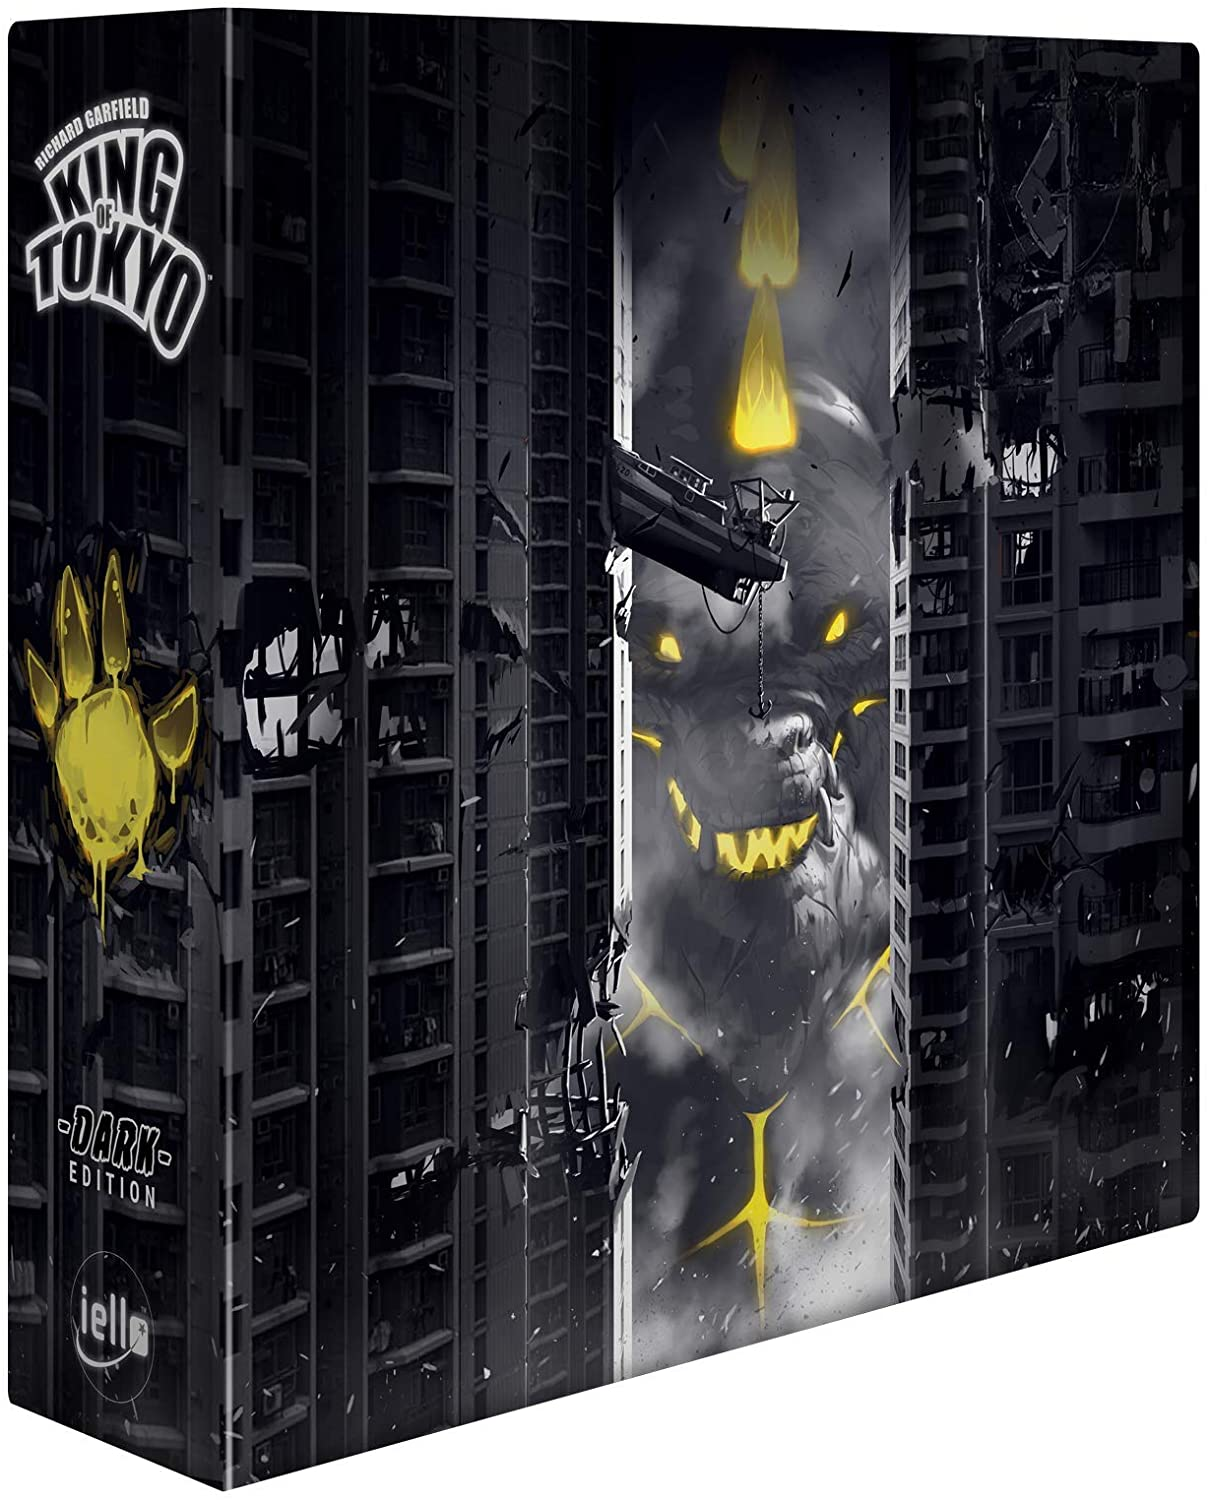 IELLO King of Tokyo Dark Edition - Limited Edition - best Japanese board games